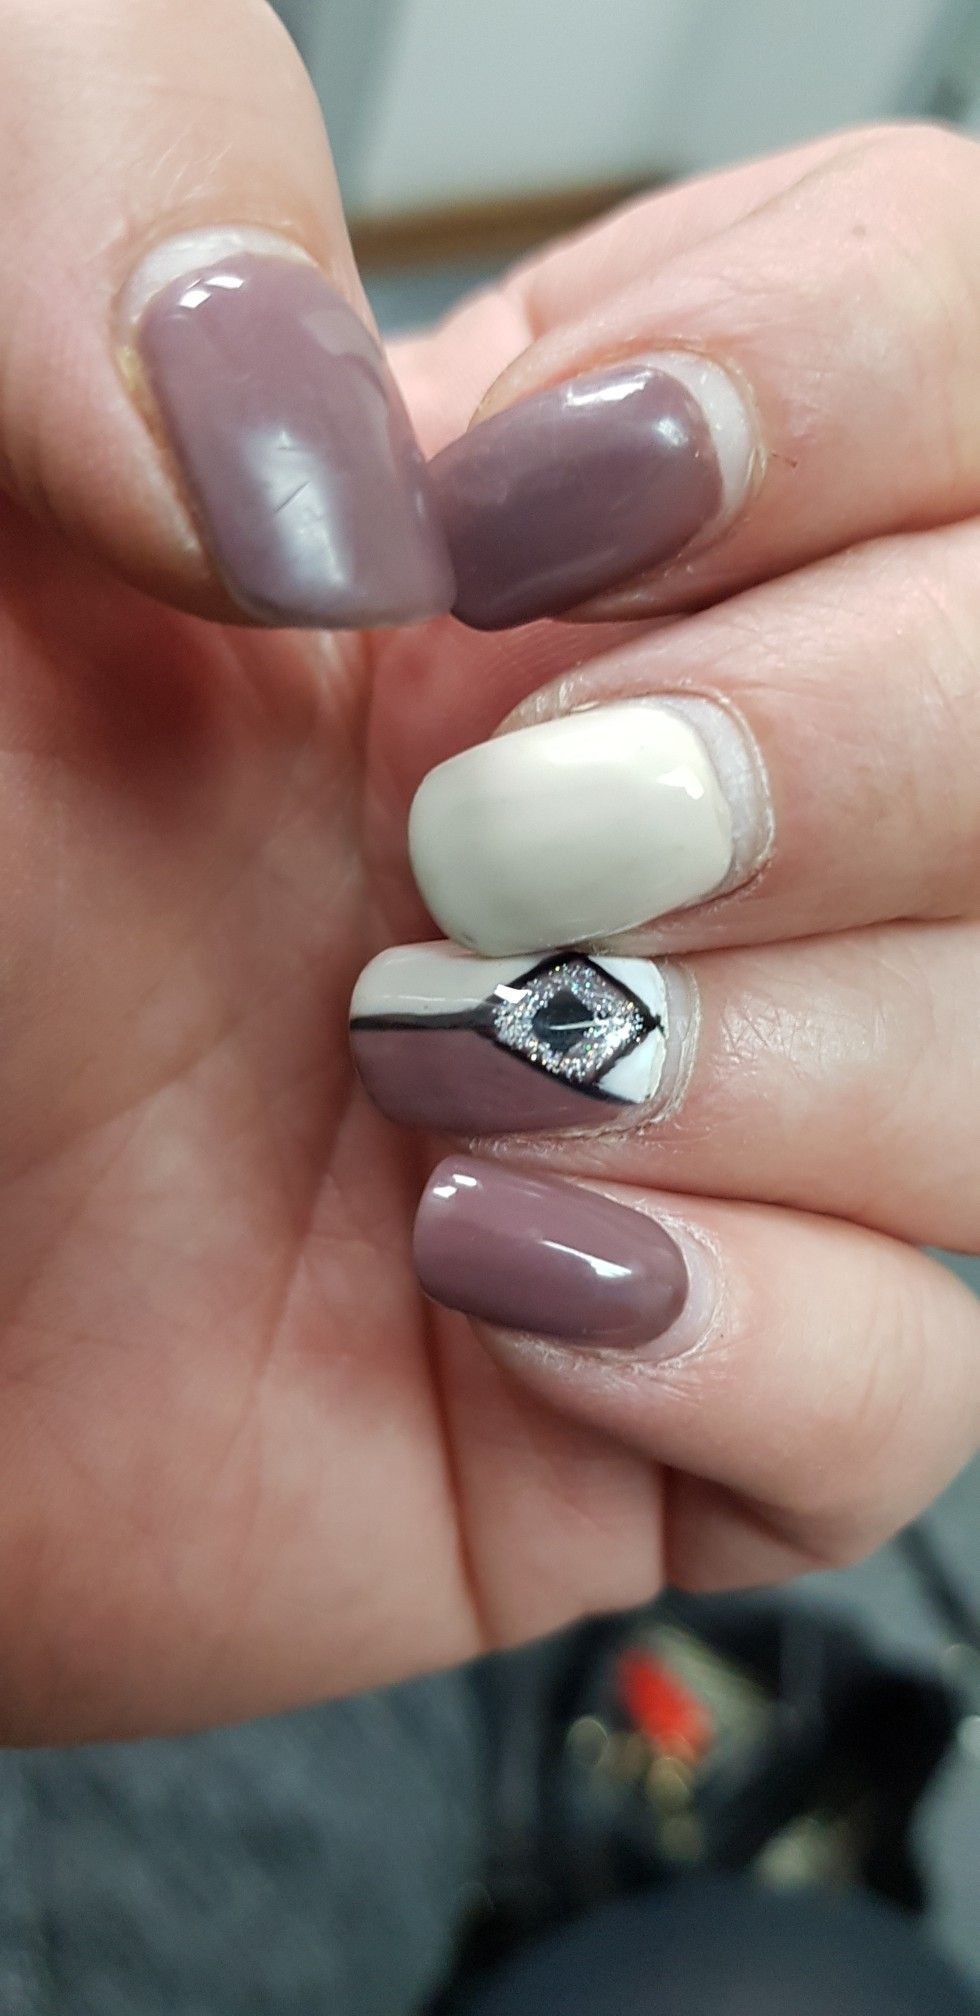 Pin by MaryAnn Thorburn on My nails  Pinterest  My nails and Nails